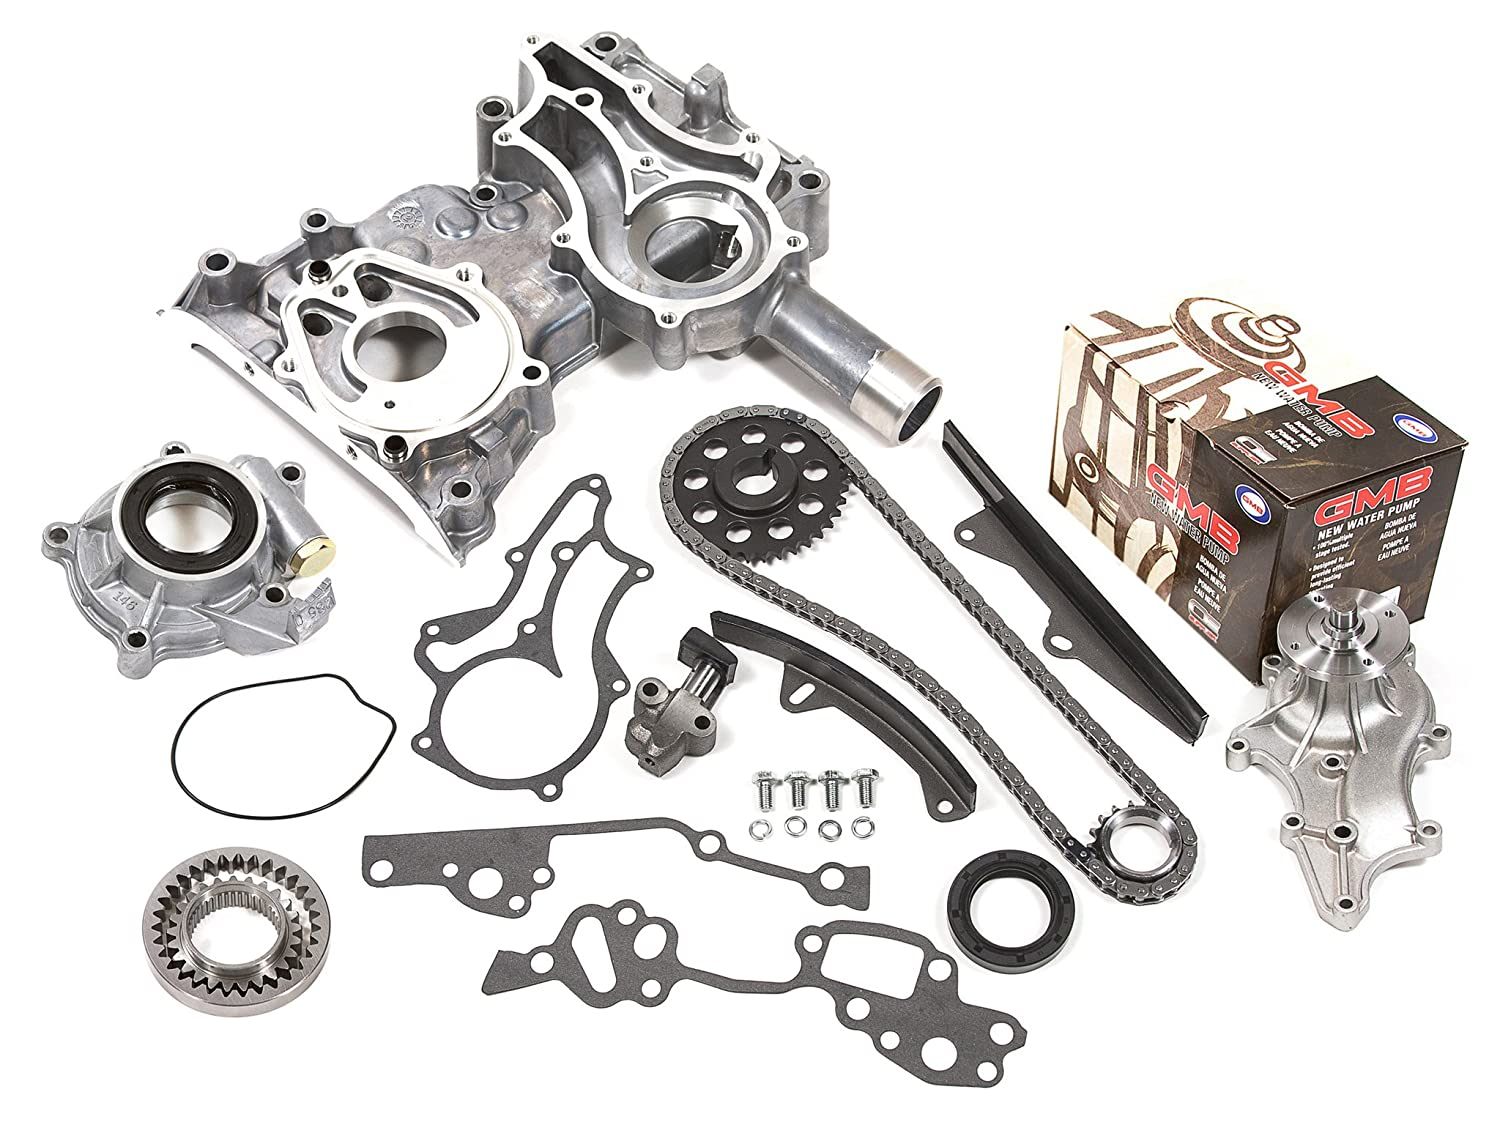 Amazon.com: Evergreen TCK2000HPWOP Toyota 22R 22RE Heavy Duty Timing Chain  Kit w/Timing Cover, Oil Pump, GMB Water Pump: Automotive